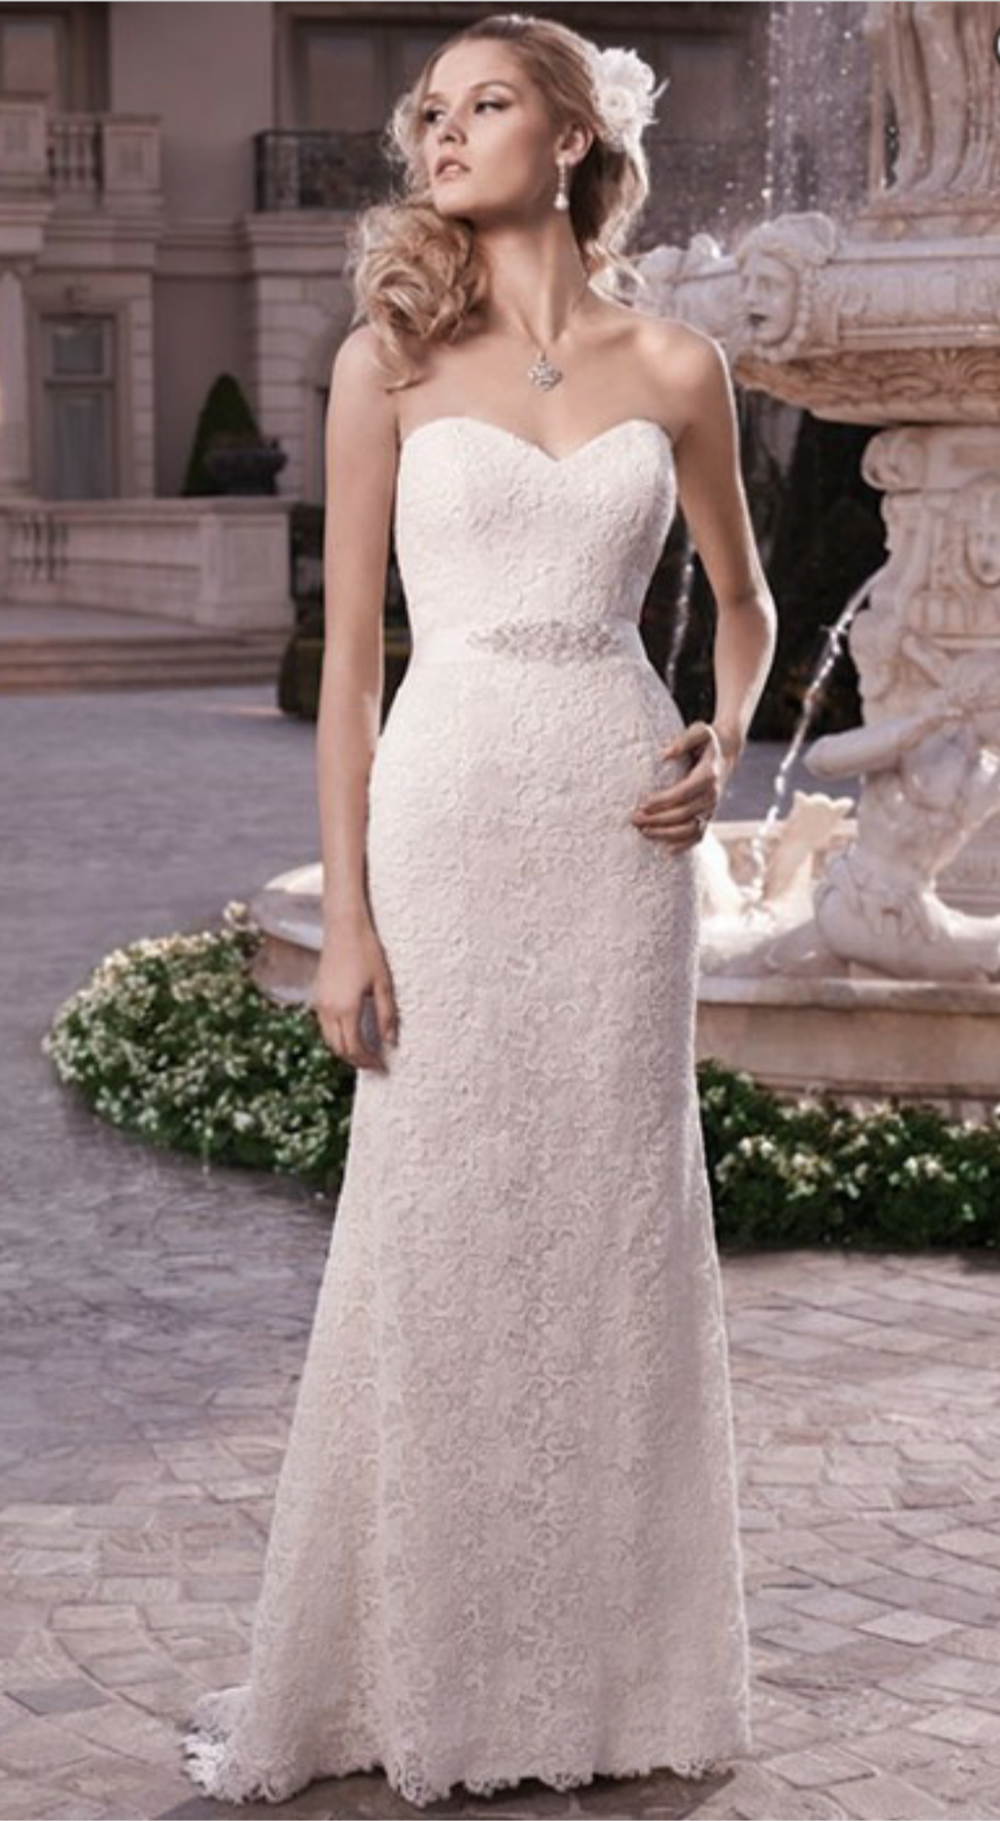 Landy Bridal Gorgeous Gown Collection | Cat Eyes Red Lips